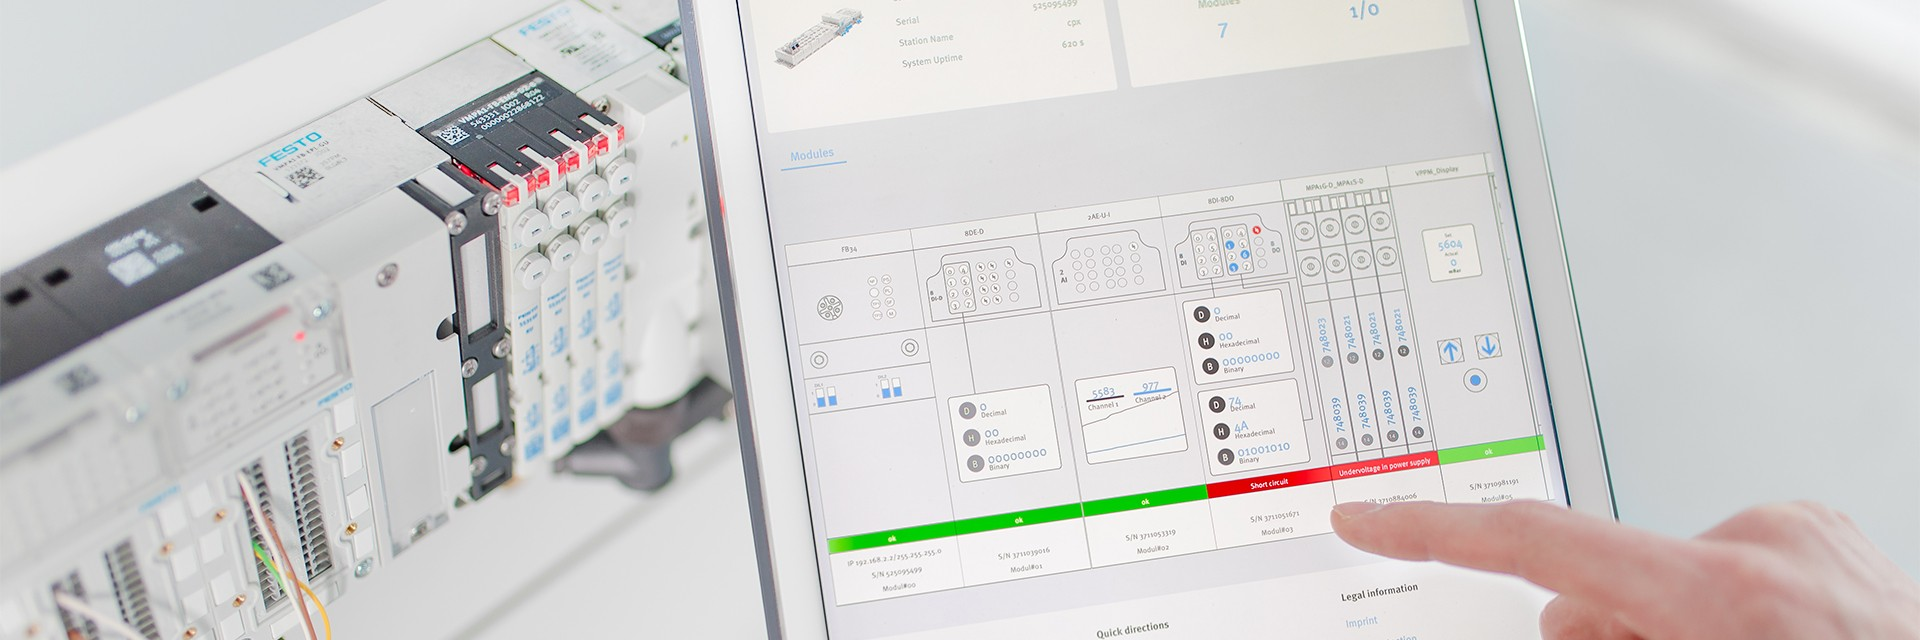 Cloud Services: Festo Dashboards